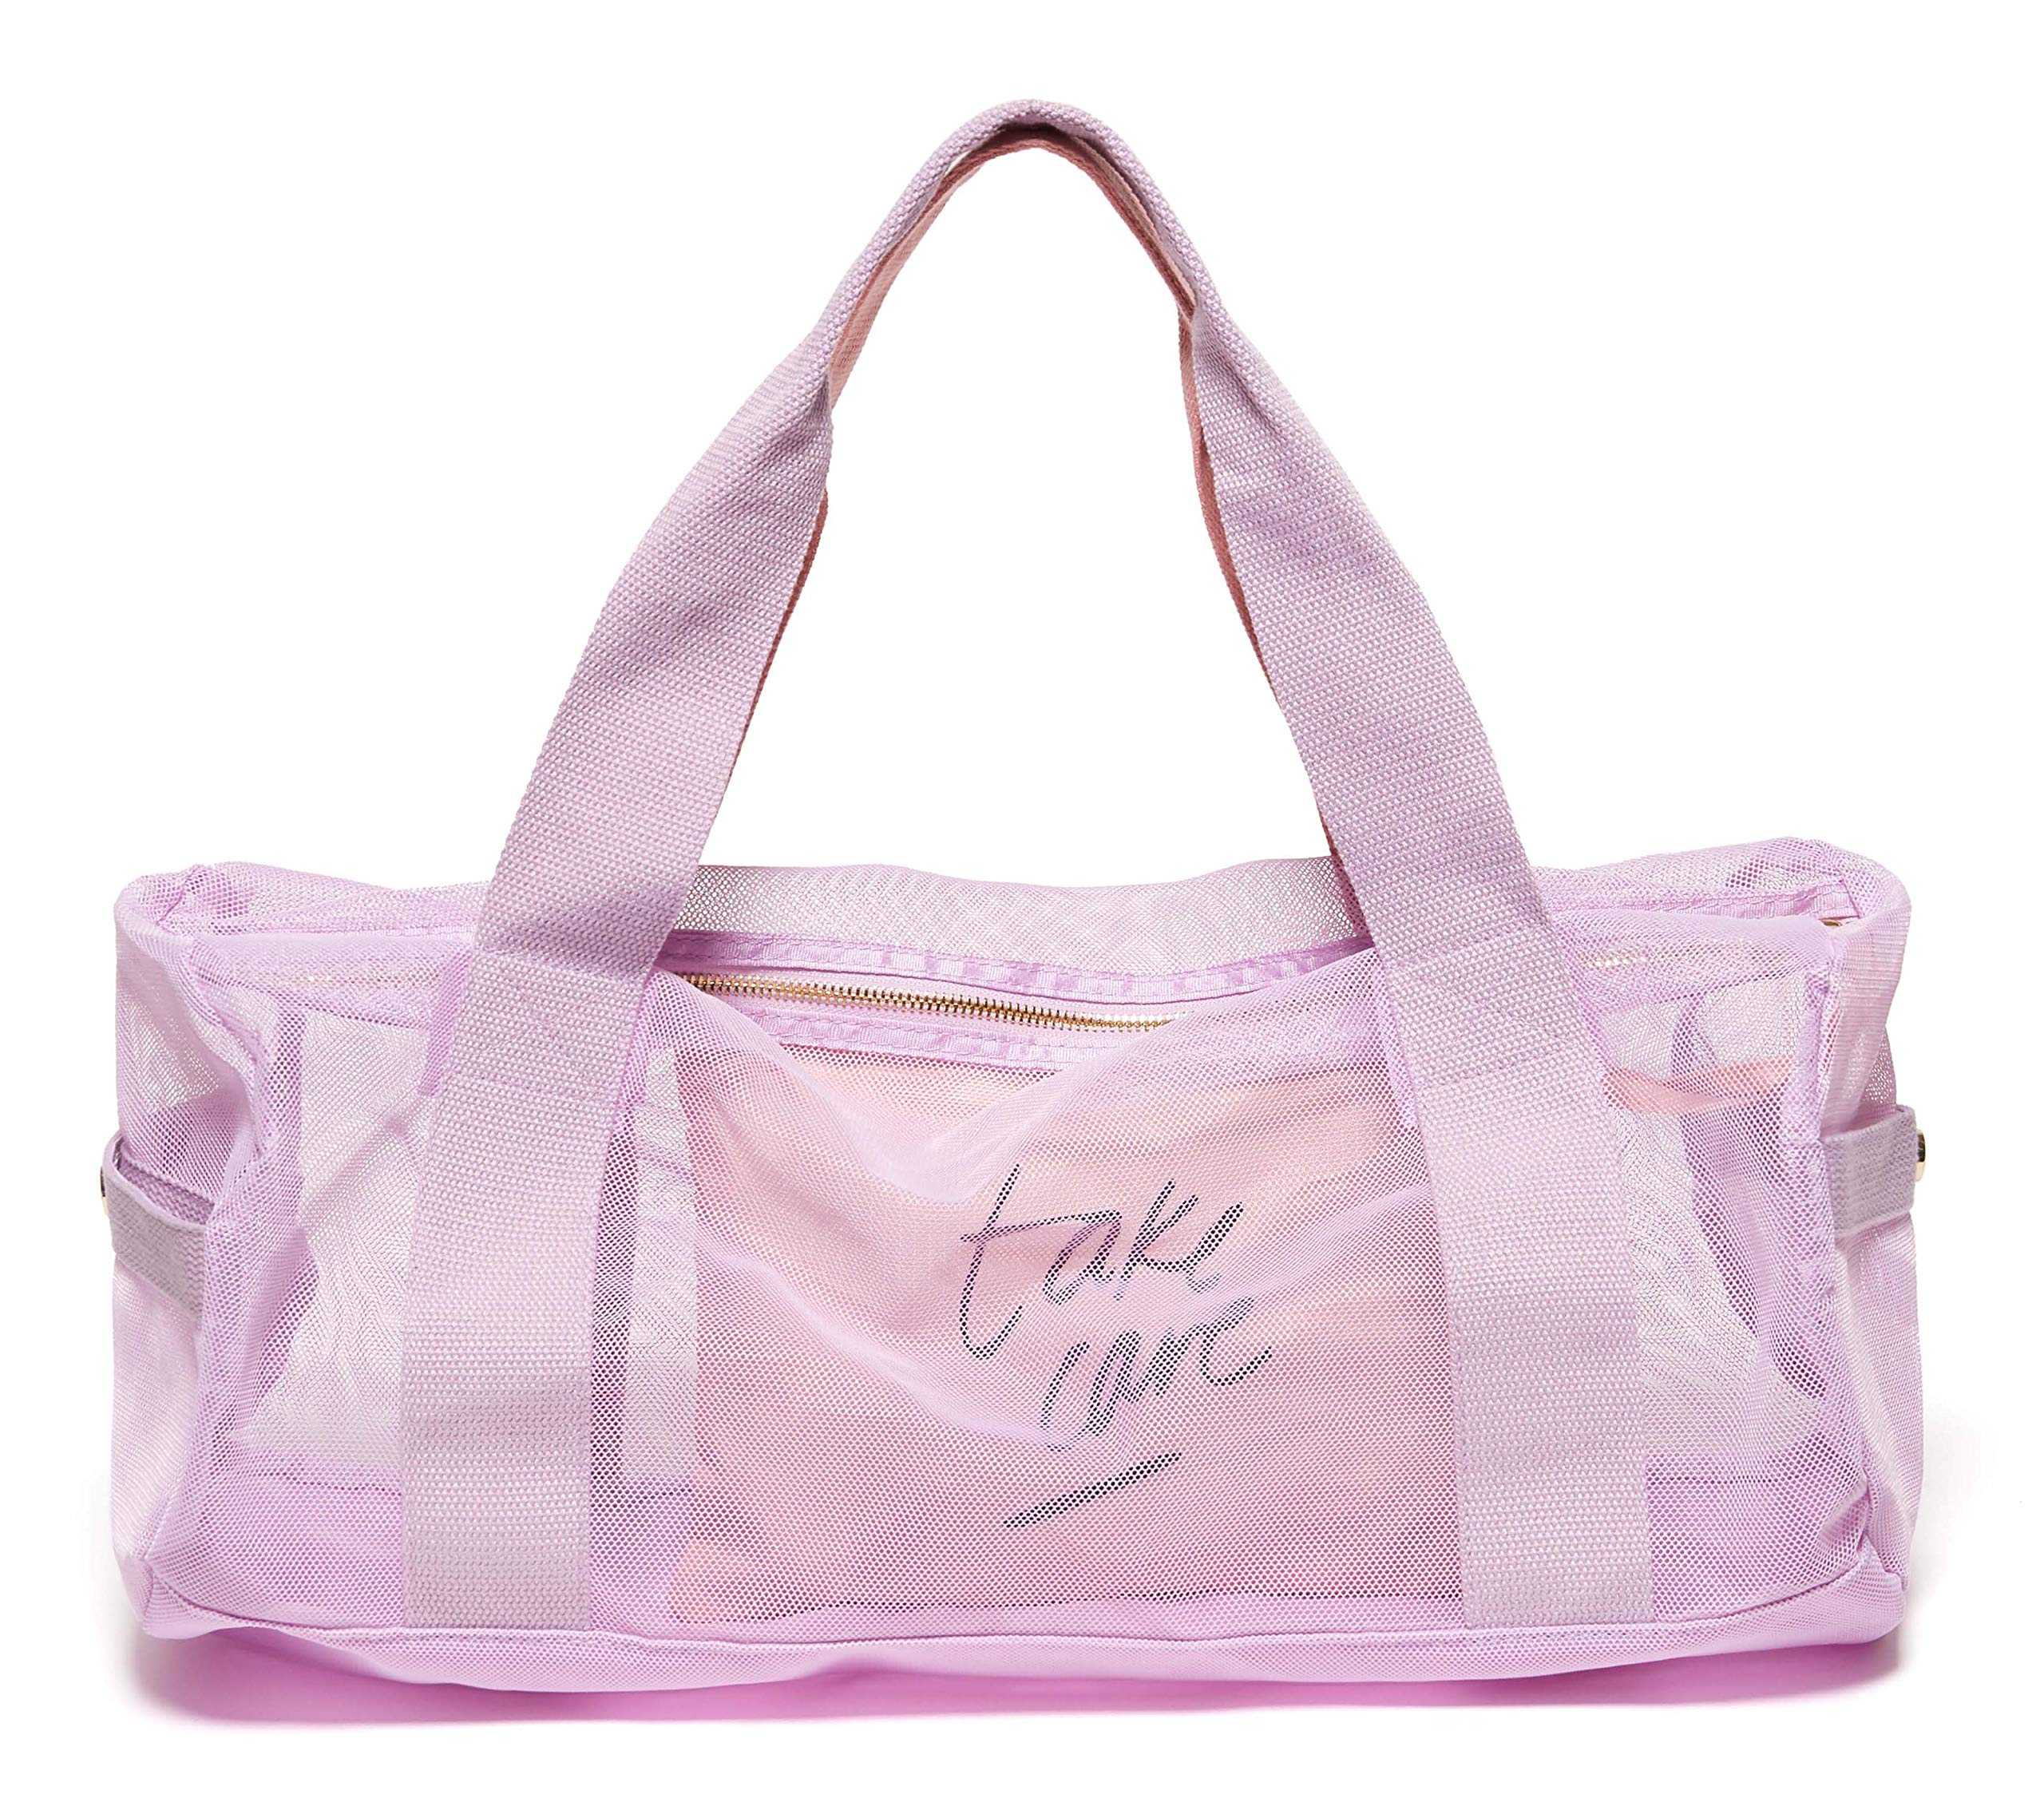 Ban.do Women's Work It Out Gym Bag with Zipper Pouch, Take Care